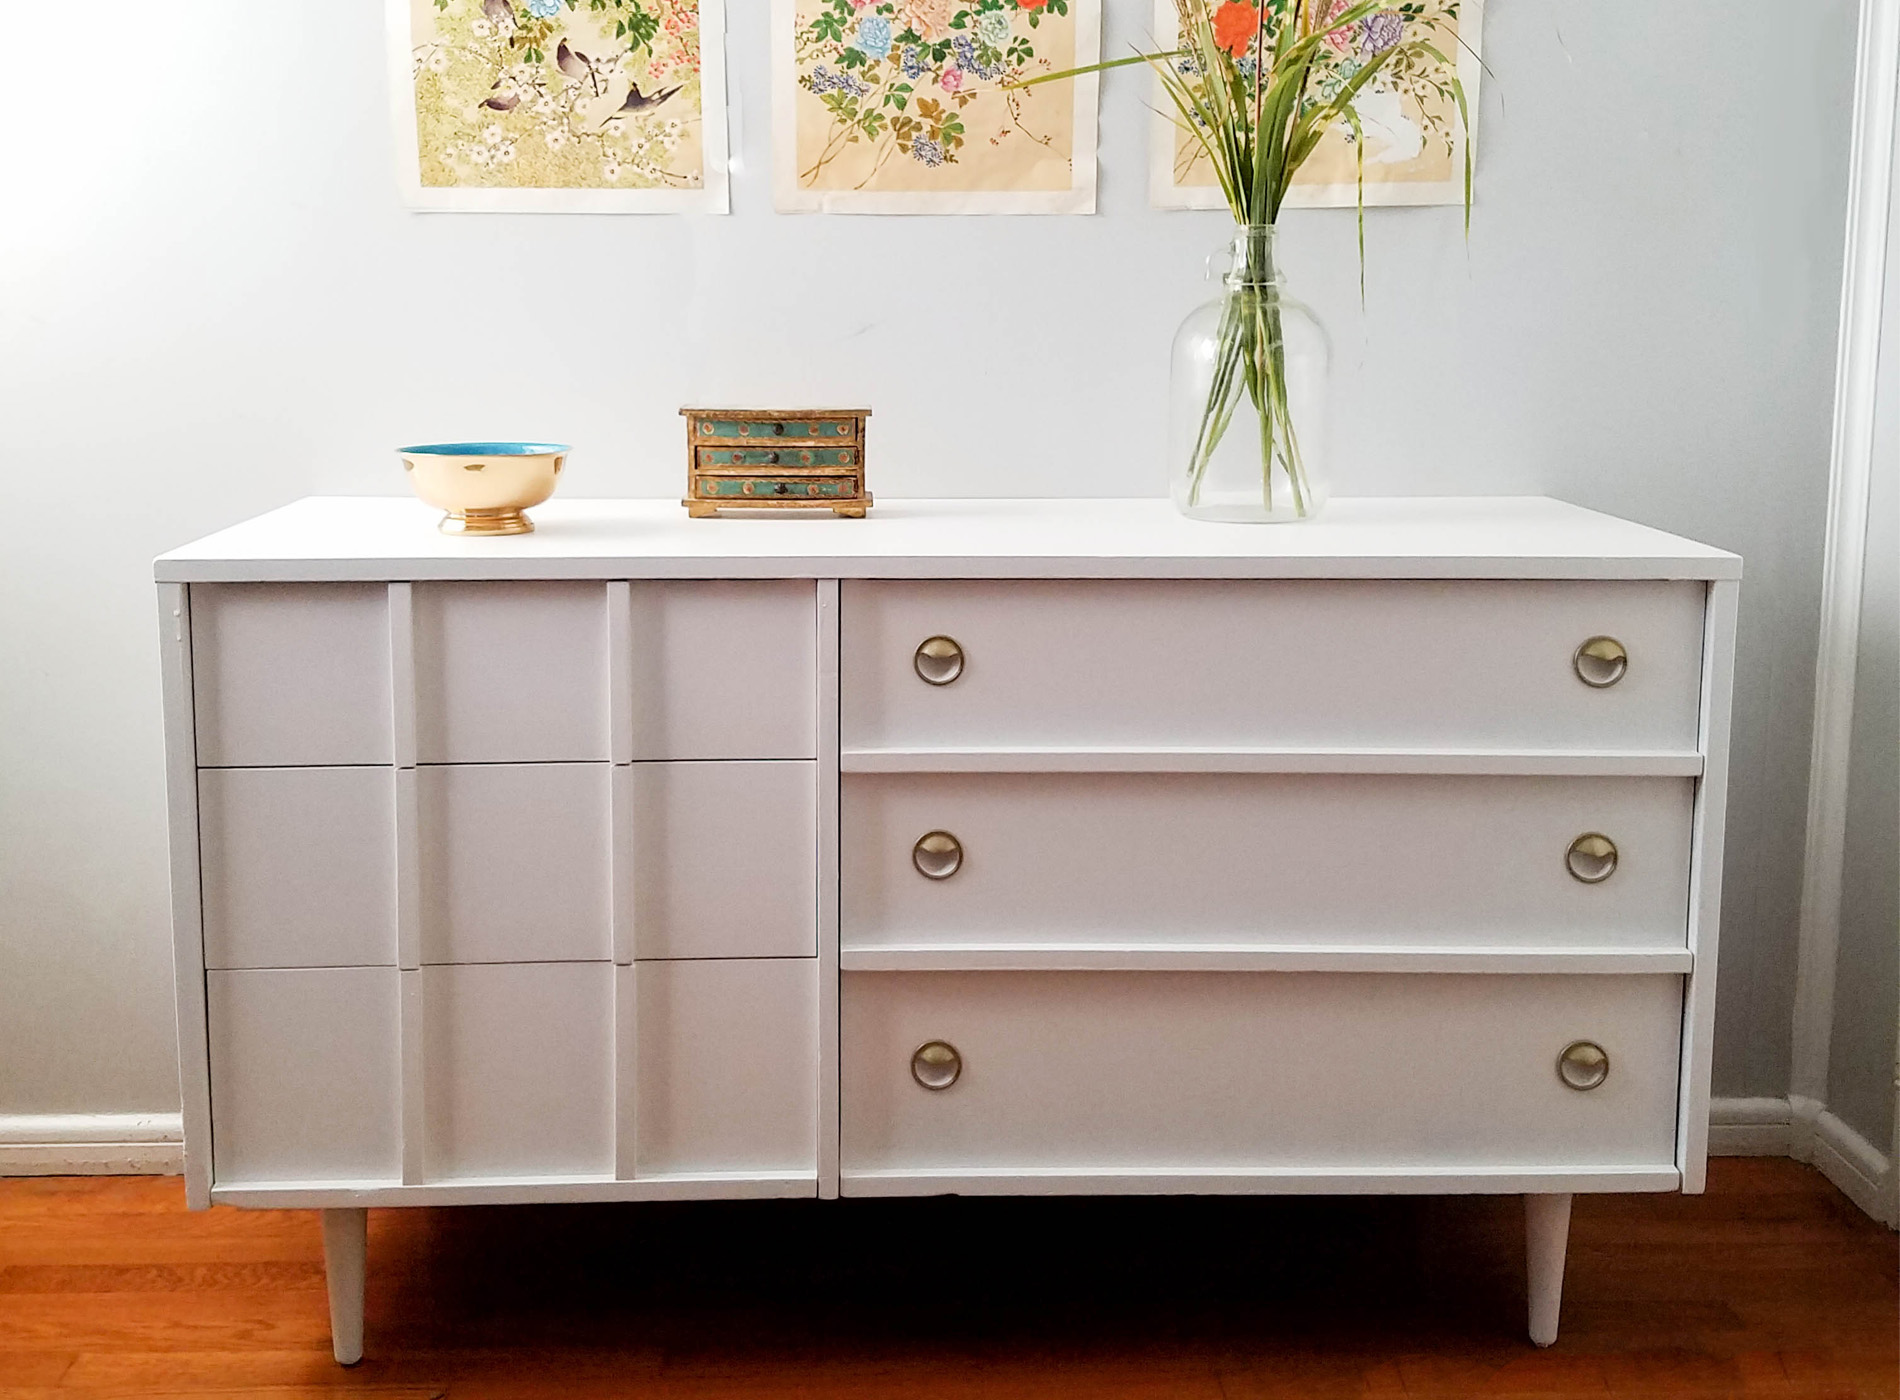 Featured Painted Furniture Dresser with Behr | Prodigal Pieces | prodigalpieces.com